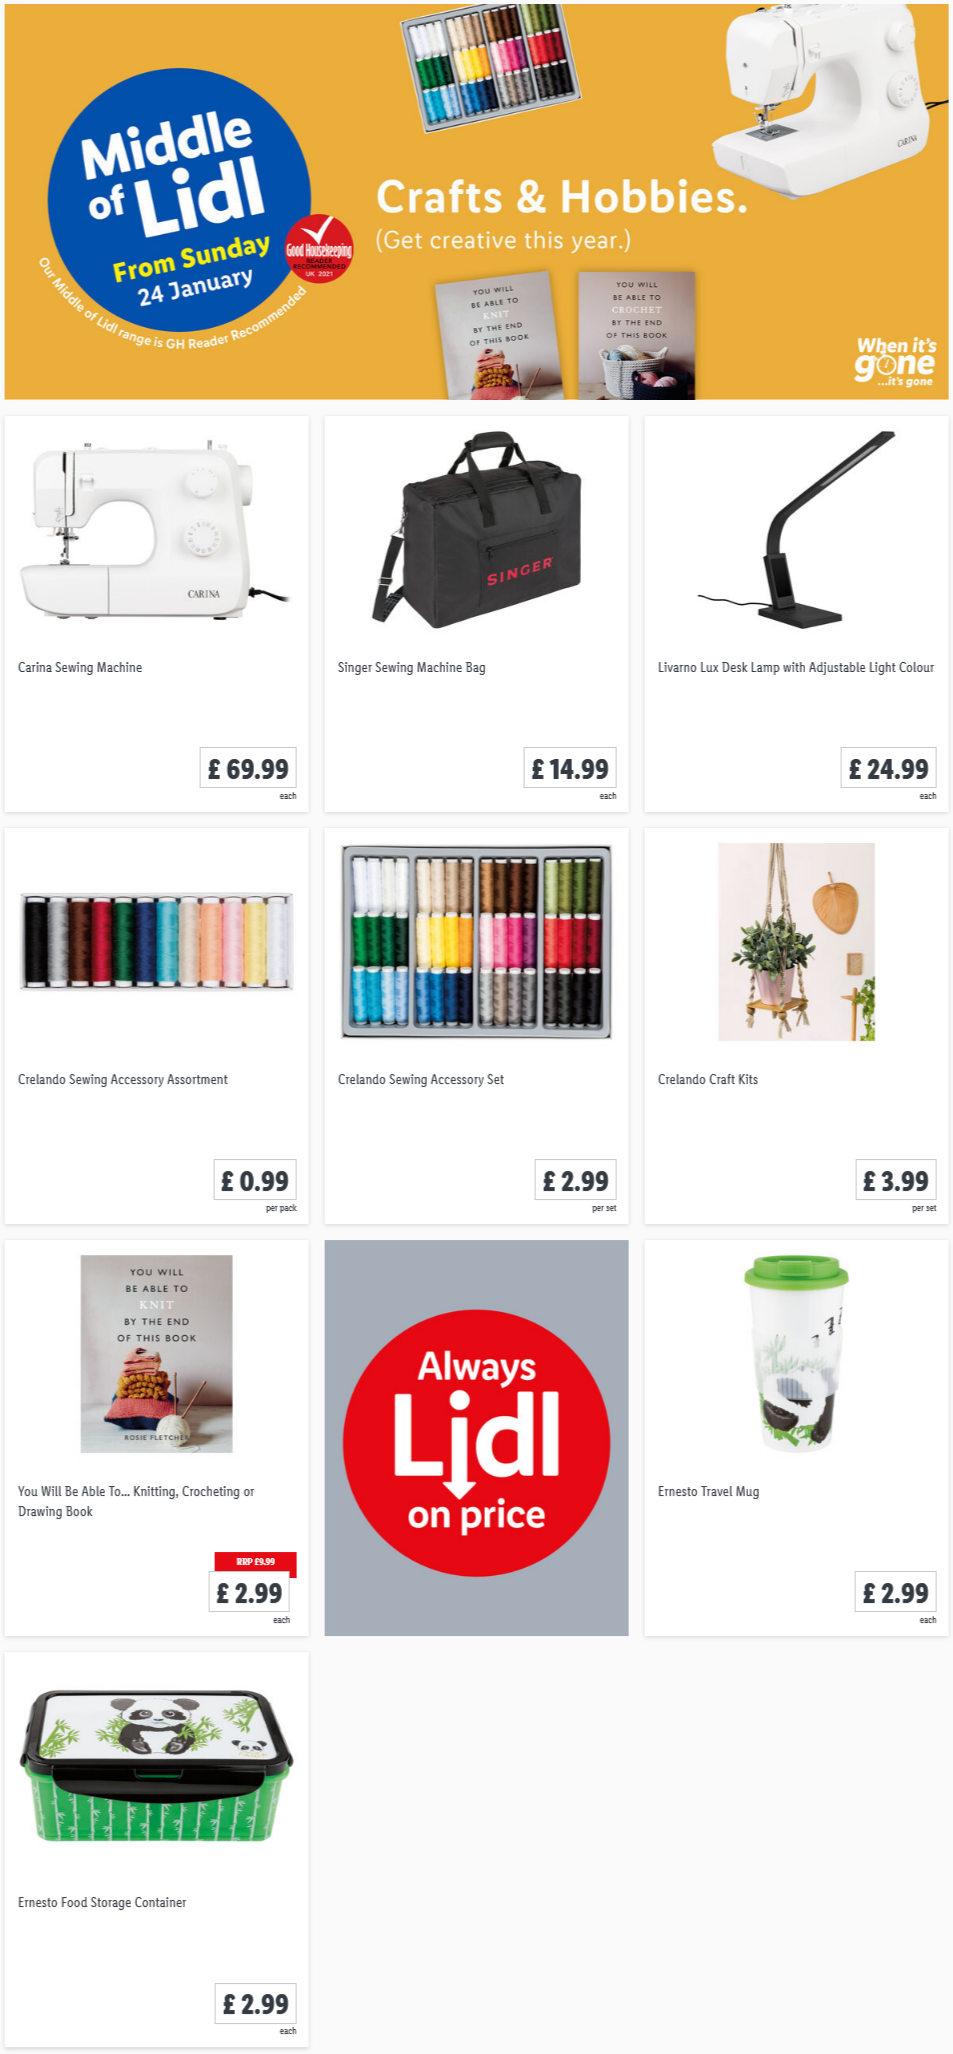 LiDL Crafts & Hobbies from 24th January 2021 LiDL Sunday Offers